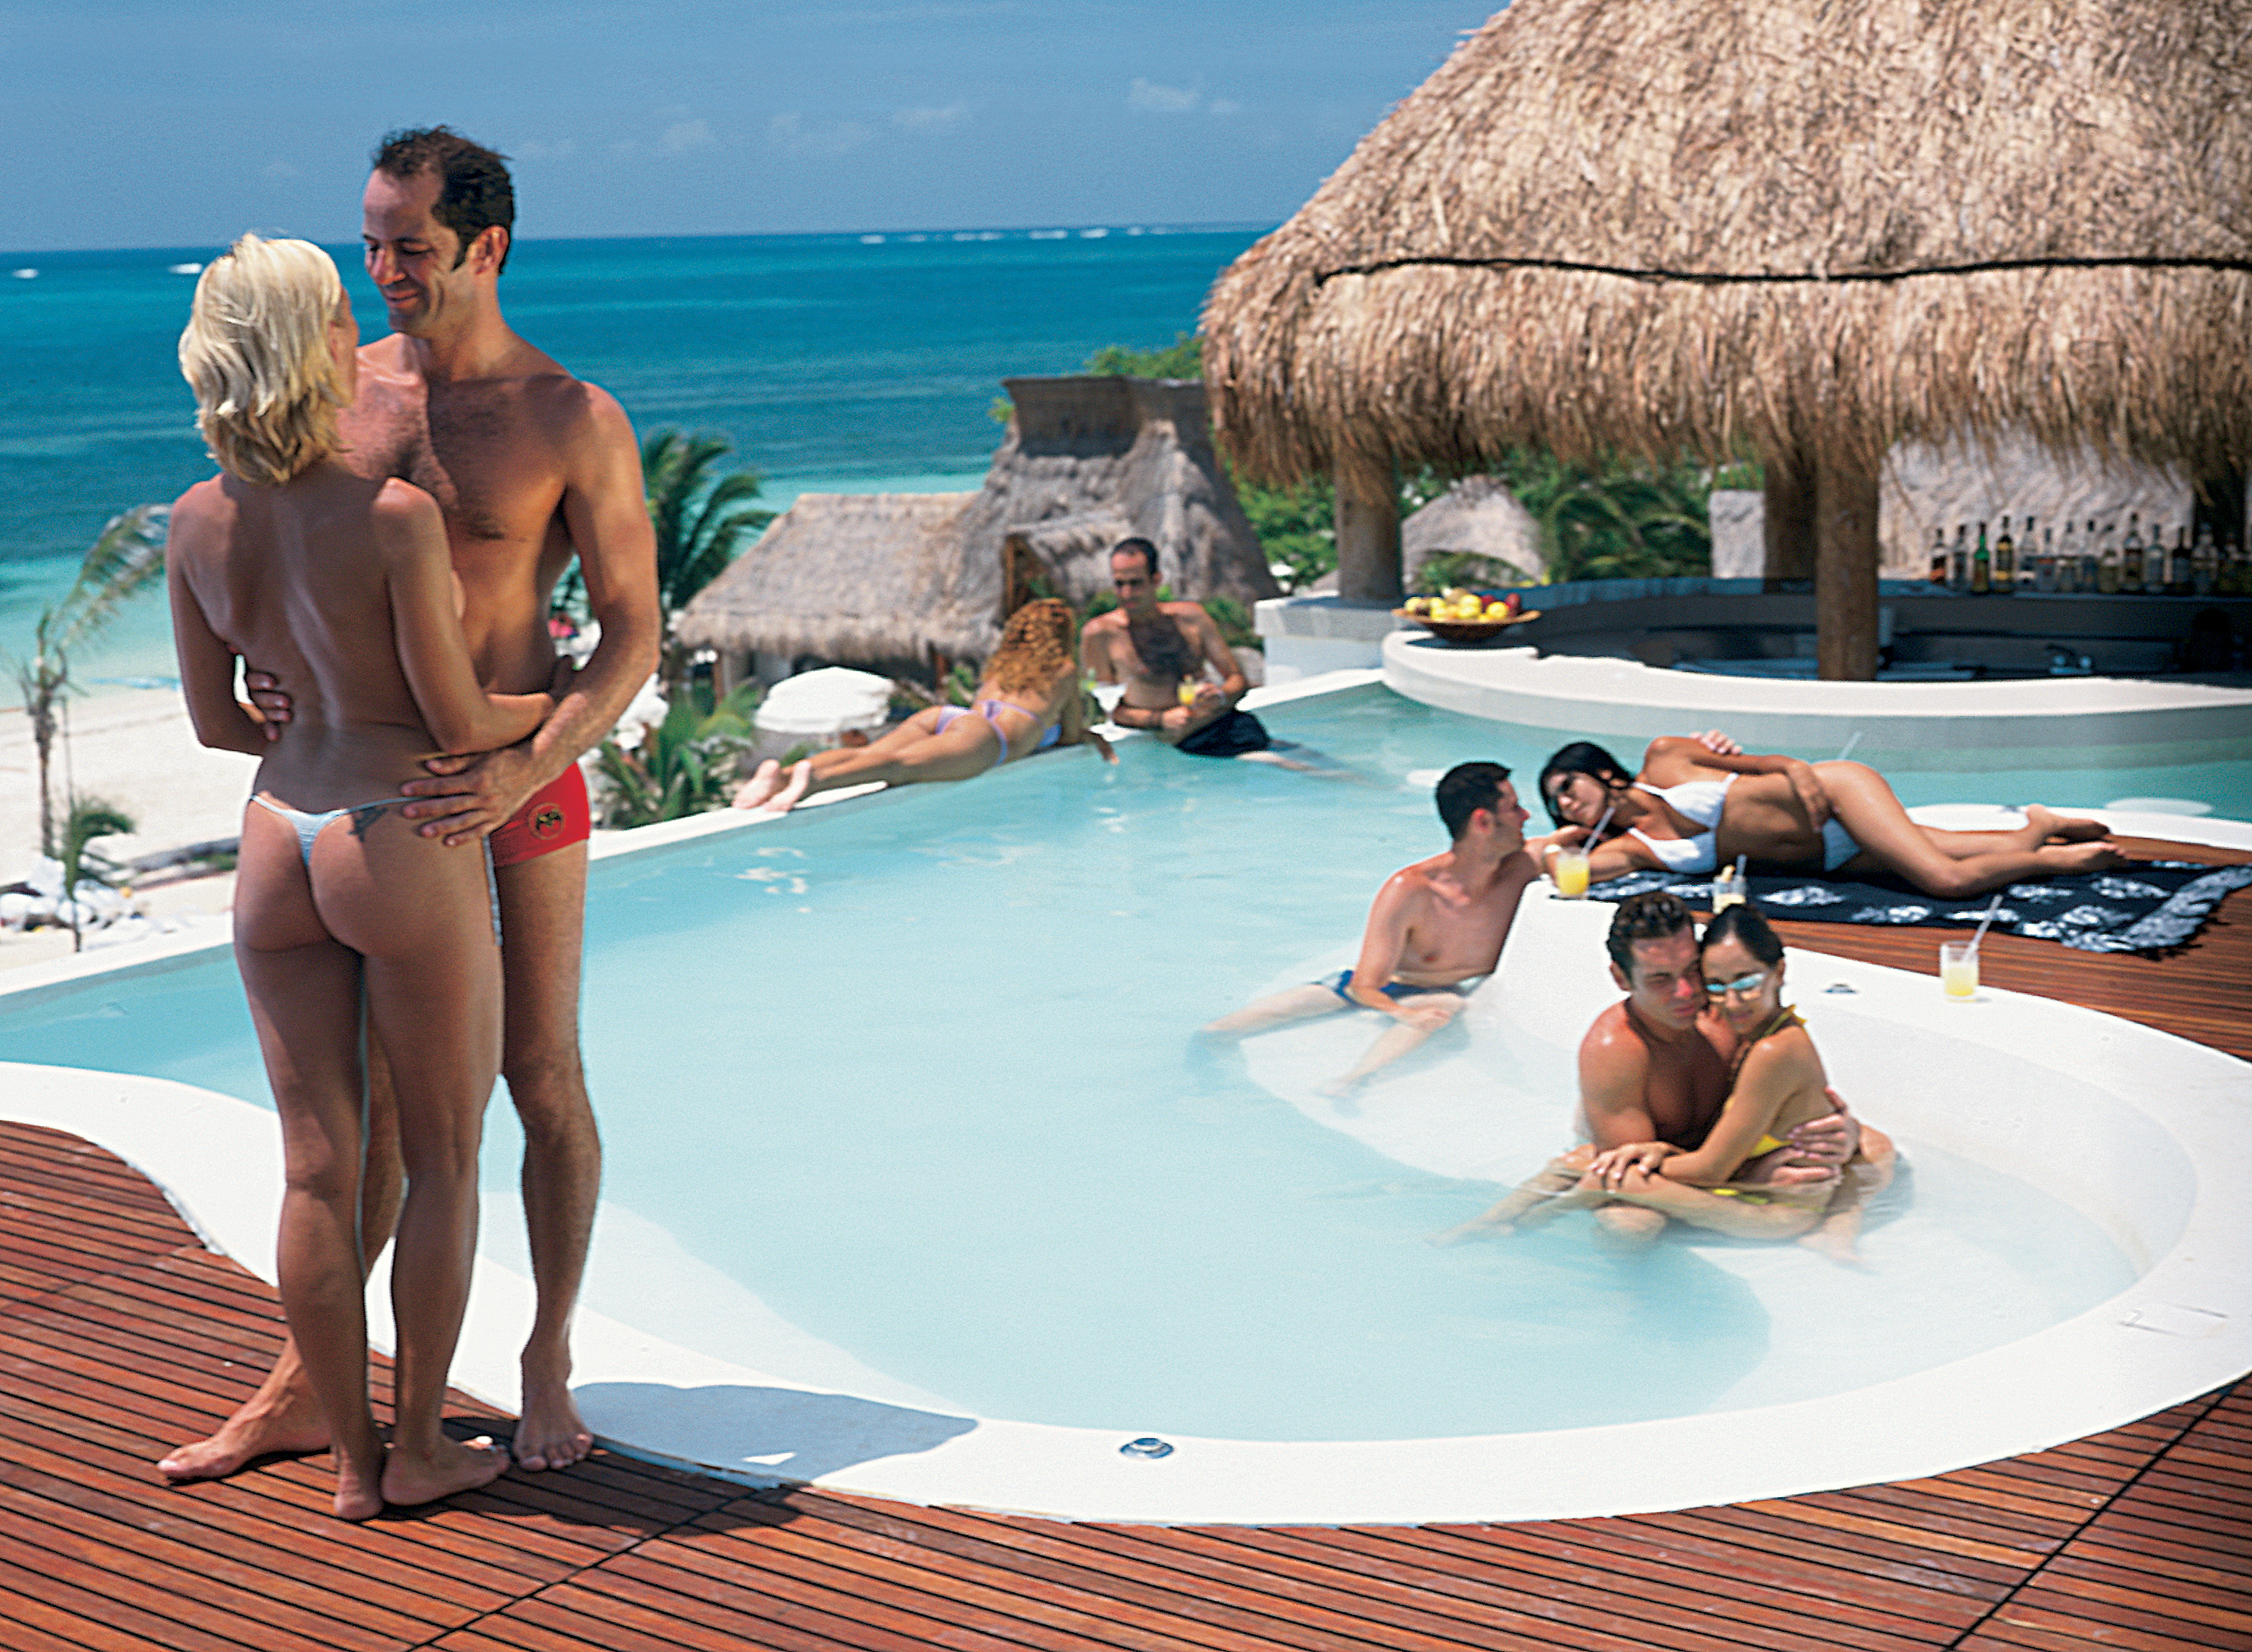 DESIRE%20CUN%20POOL%202 Home > Adult Retreats